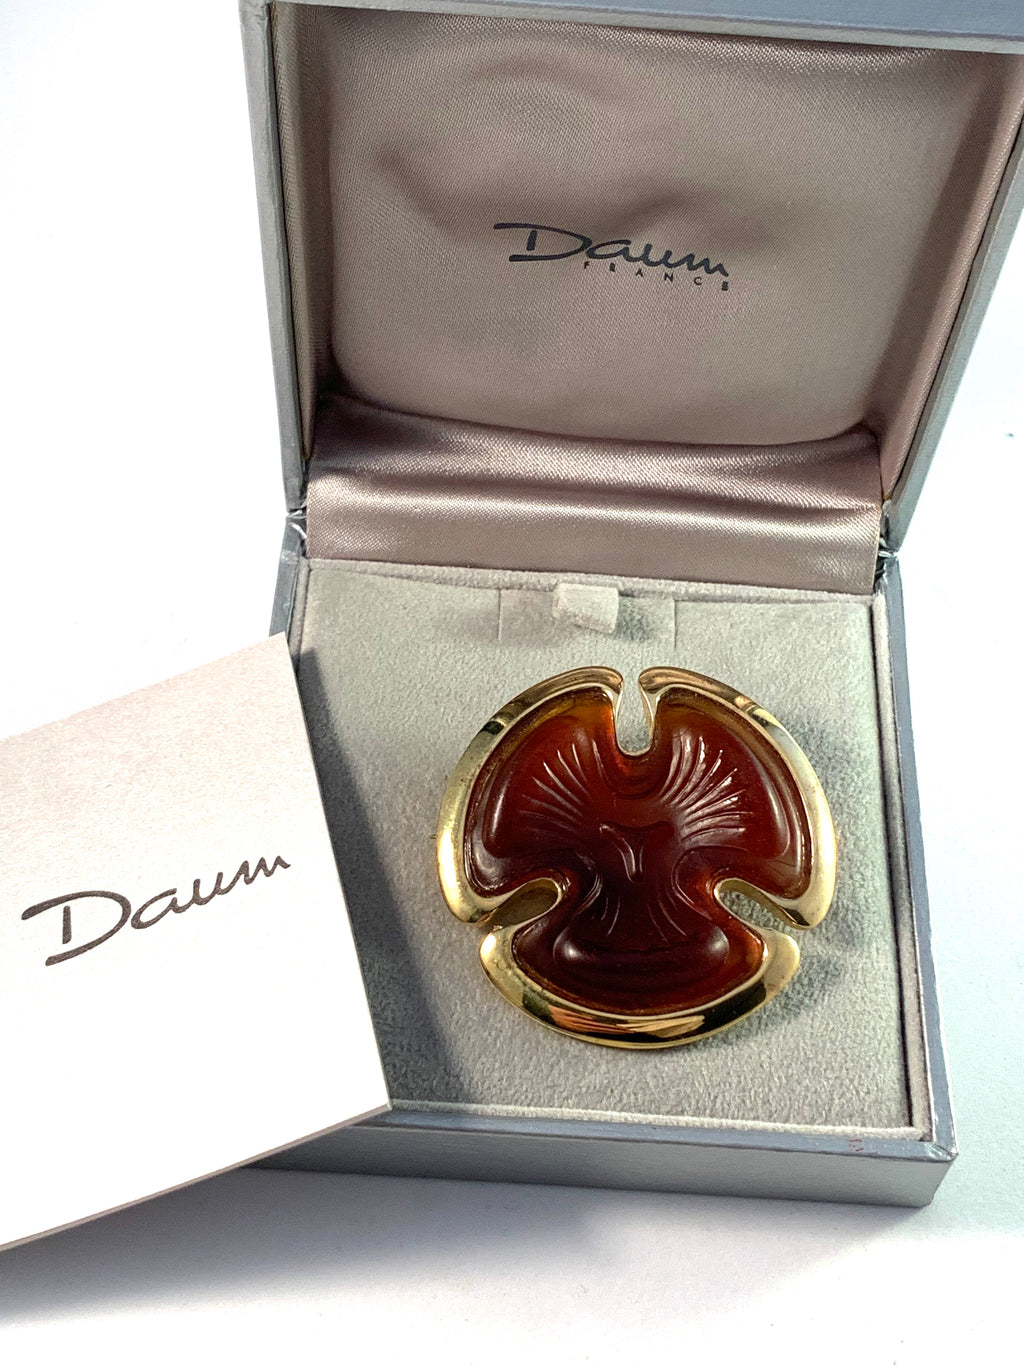 Daum, France Art Glass Gilt Sterling Brooch. Original Box.